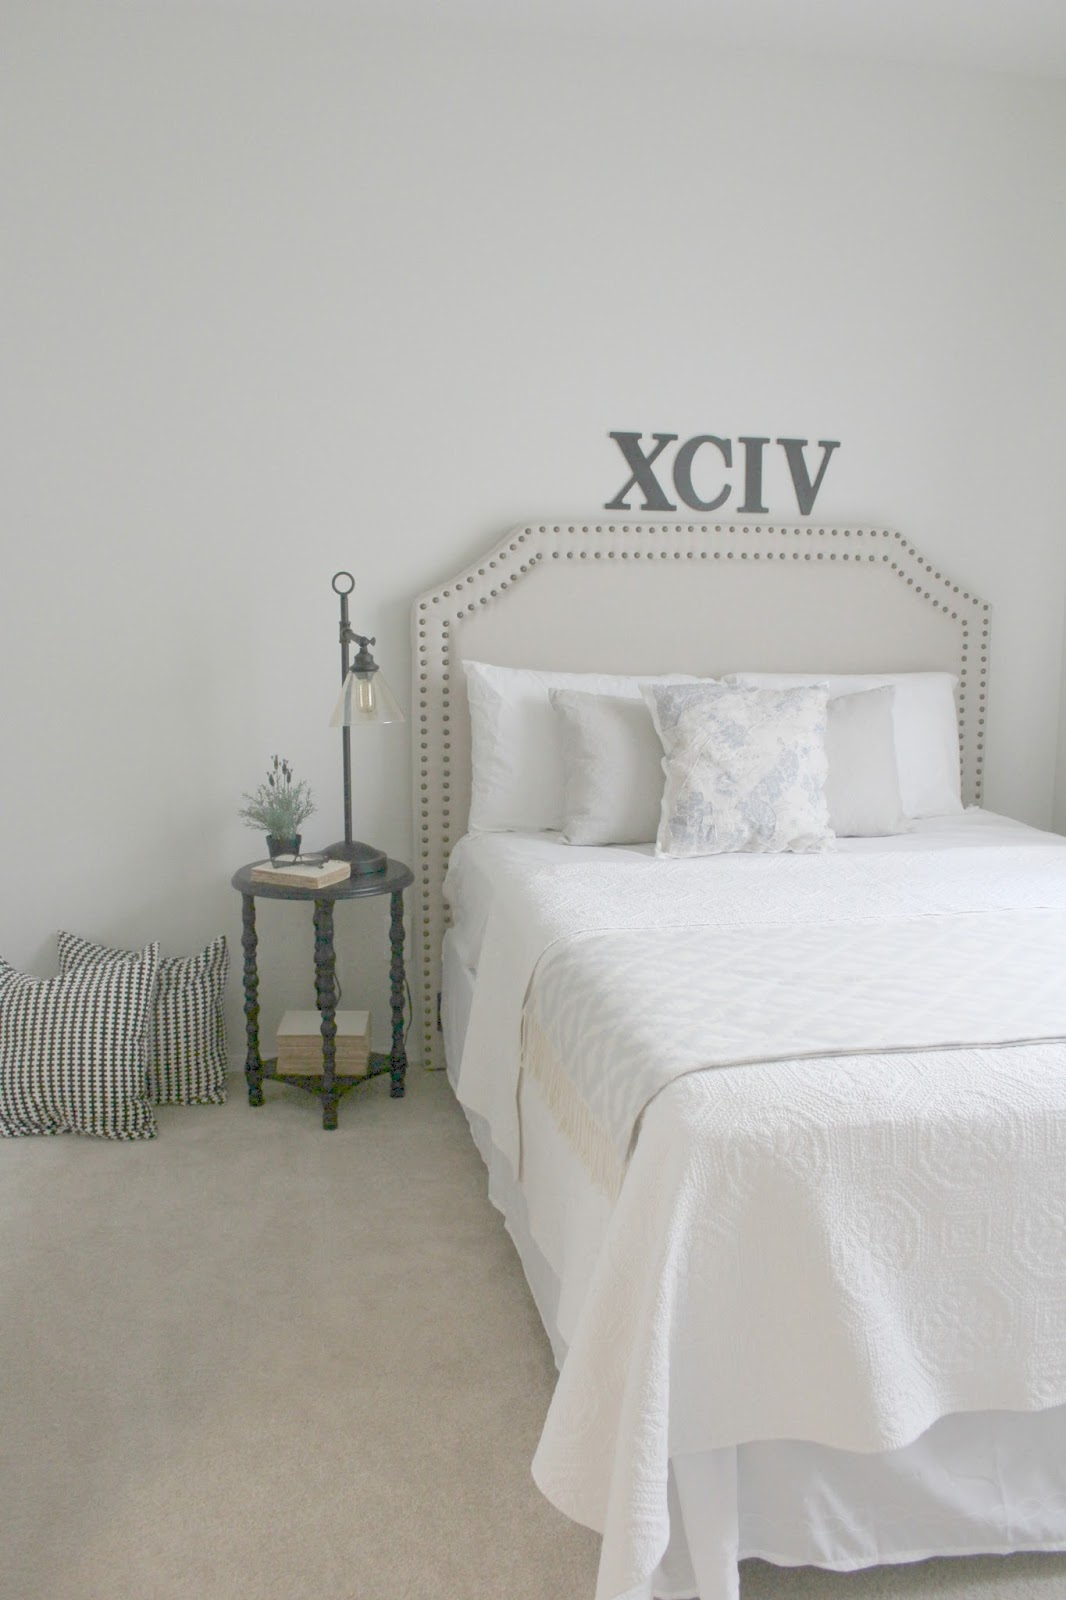 DIY bedroom decor makeover with serene, European inspired modern farmhouse style by Hello Lovely Studio